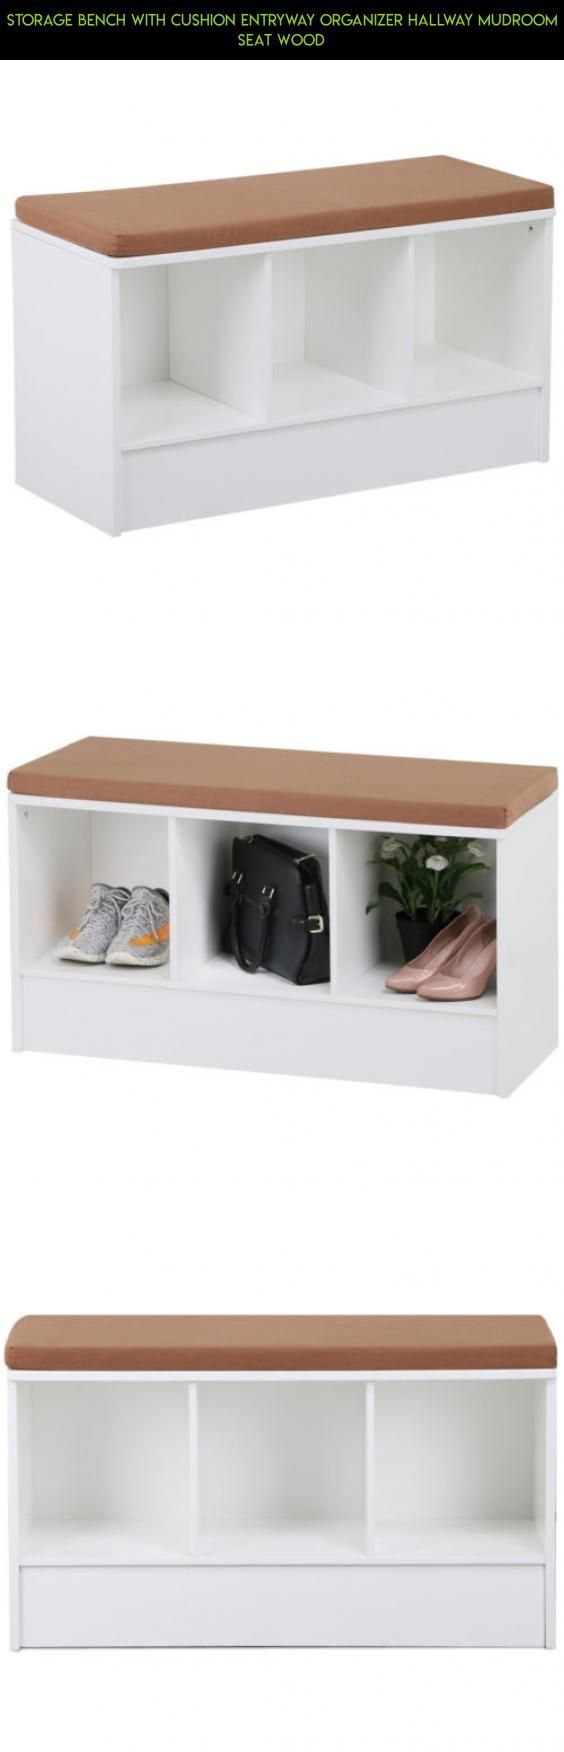 Storage Bench with Cushion Entryway Organizer Hallway Mudroom Seat Wood #products #plans #racing #bench #parts #camera #gadgets #shopping #kit #storage #technology #entryway #fpv #drone #tech